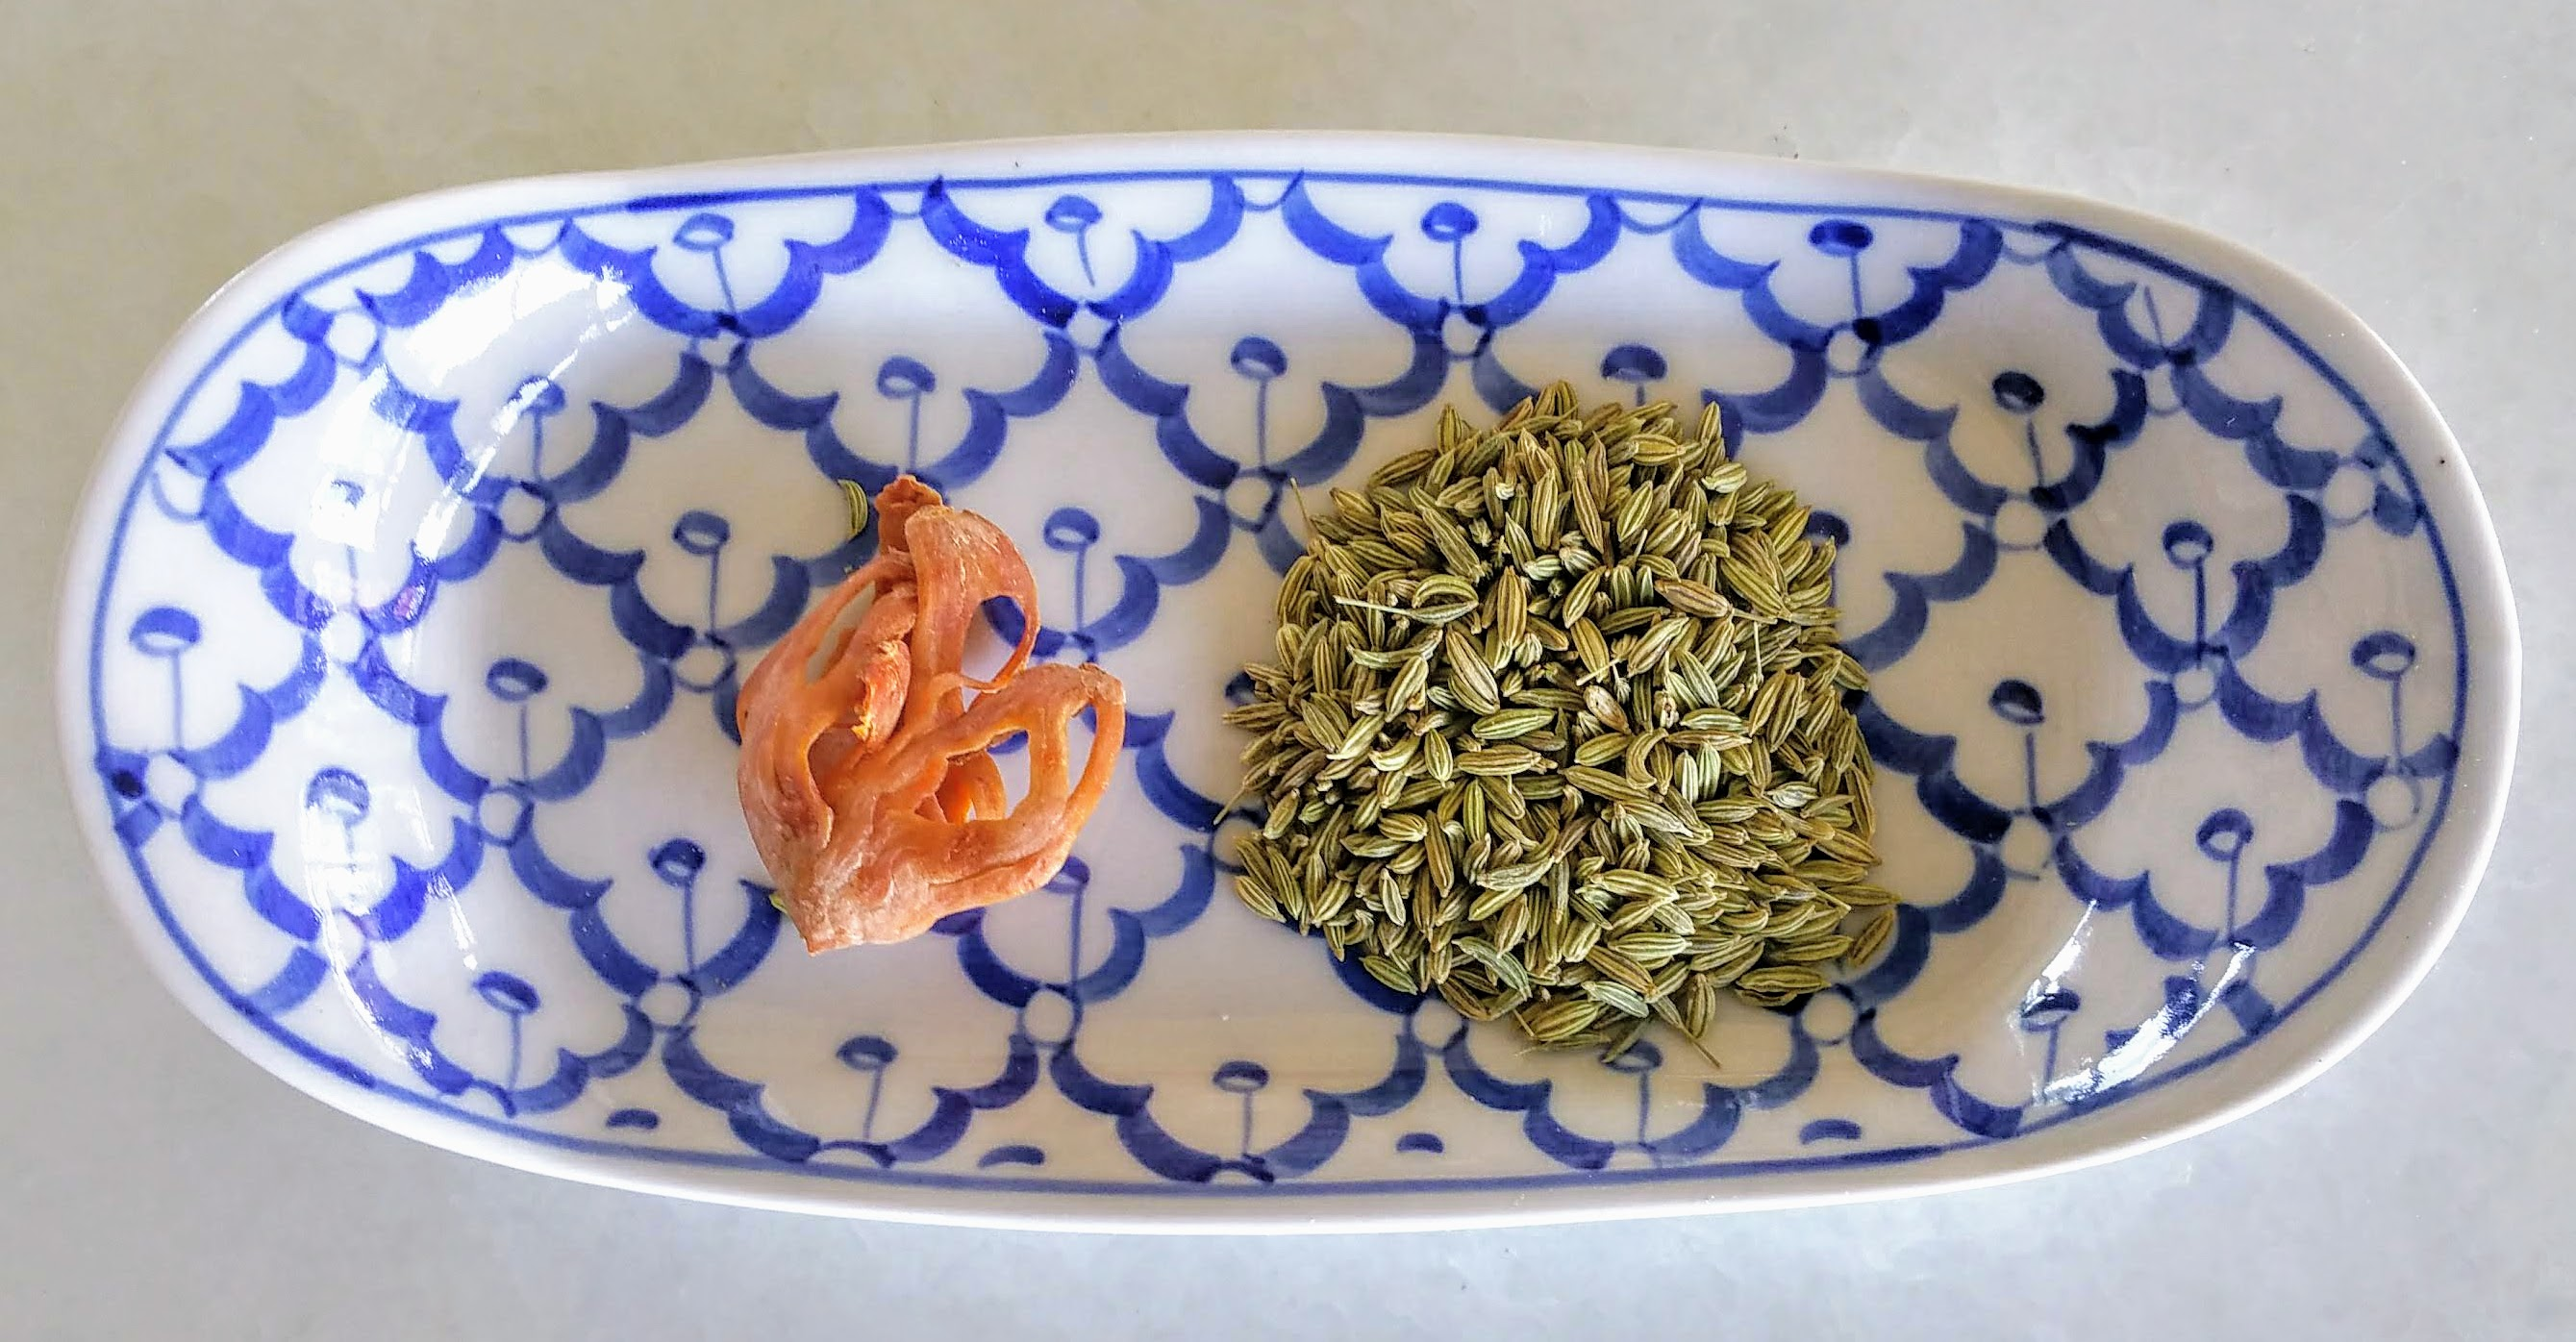 Mace & Fennel Seeds